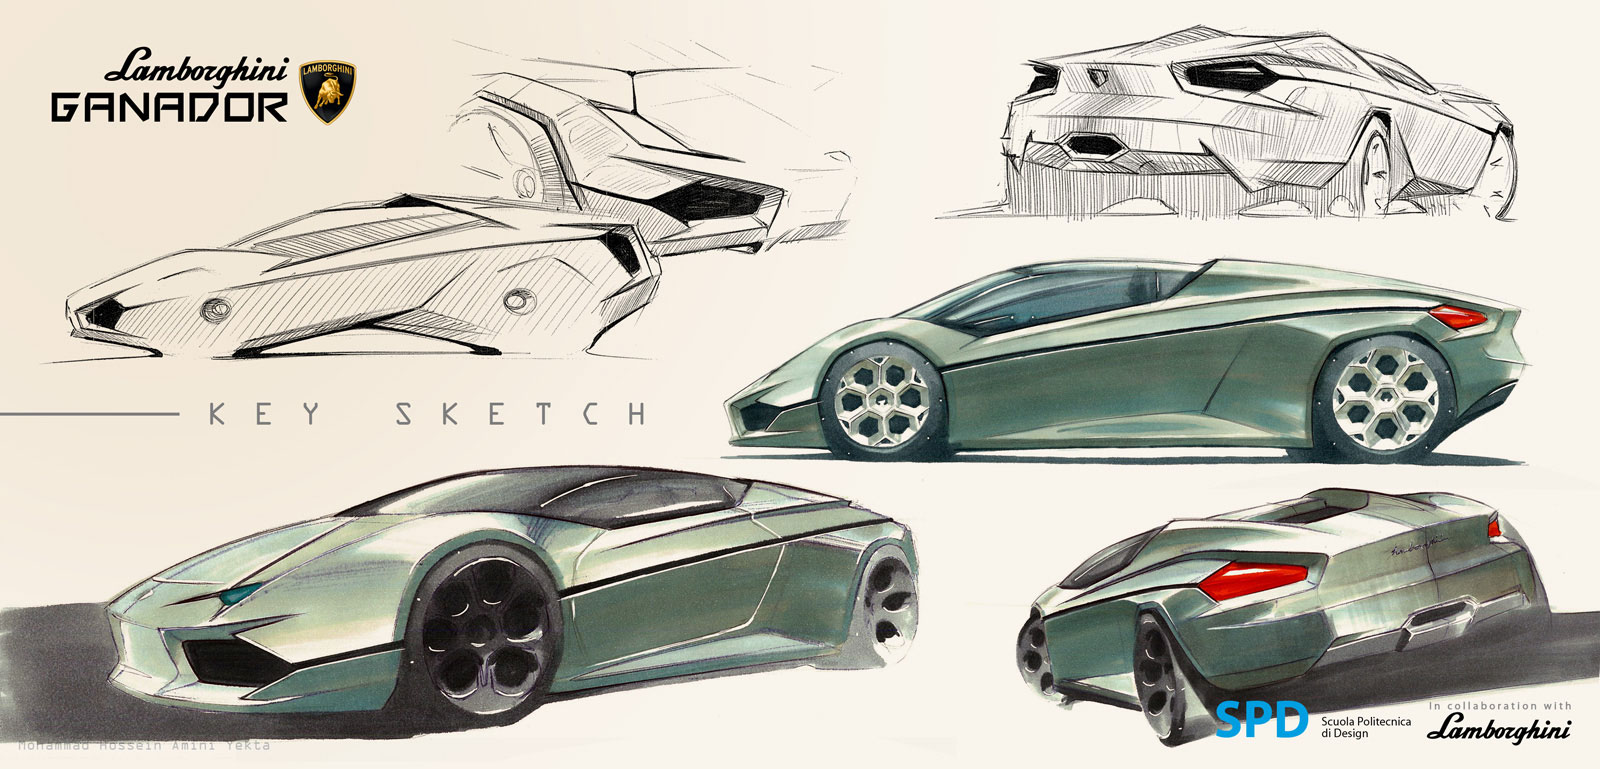 Lamborghini Ganador Concept Design Sketch Car Body Design